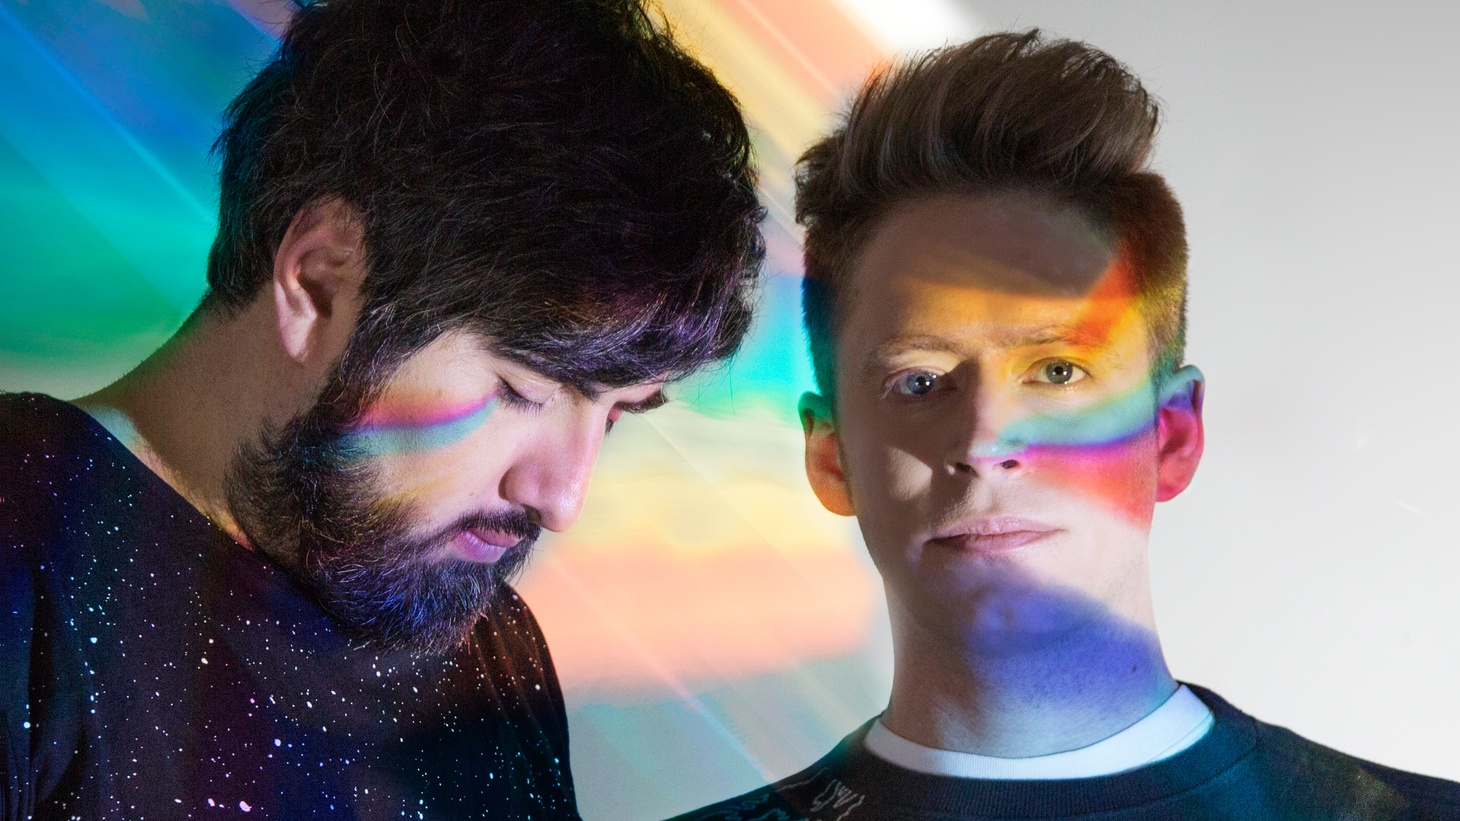 Mirage is Digitalism's return to the world of euphoric electronic pop and dance floor thumpers.